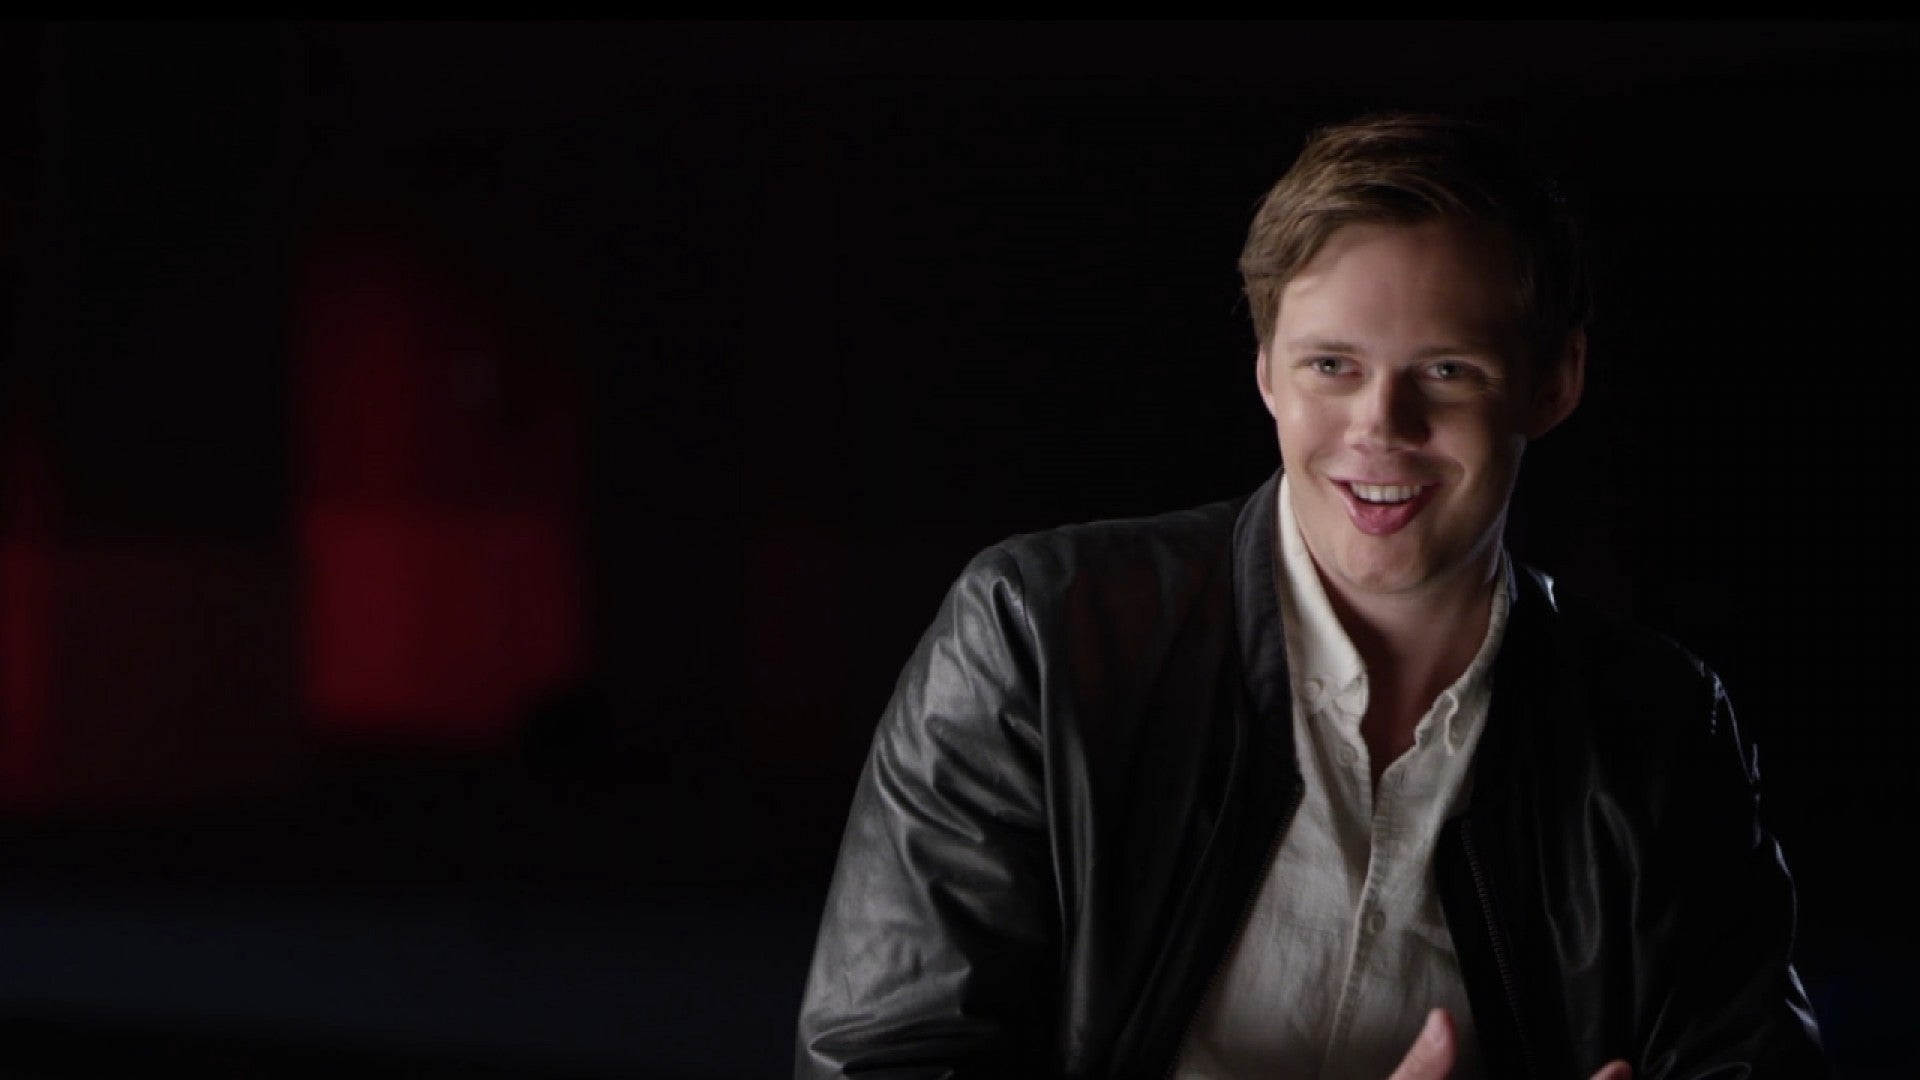 Bill Skarsgard Reveals Behind The Scenes Secrets Of His Weird Disturbing Transformation In It Exclusive Entertainment Tonight See more of bill skarsgård on facebook. find out how bill skarsgard transformed into pennywise the clown for it exclusive